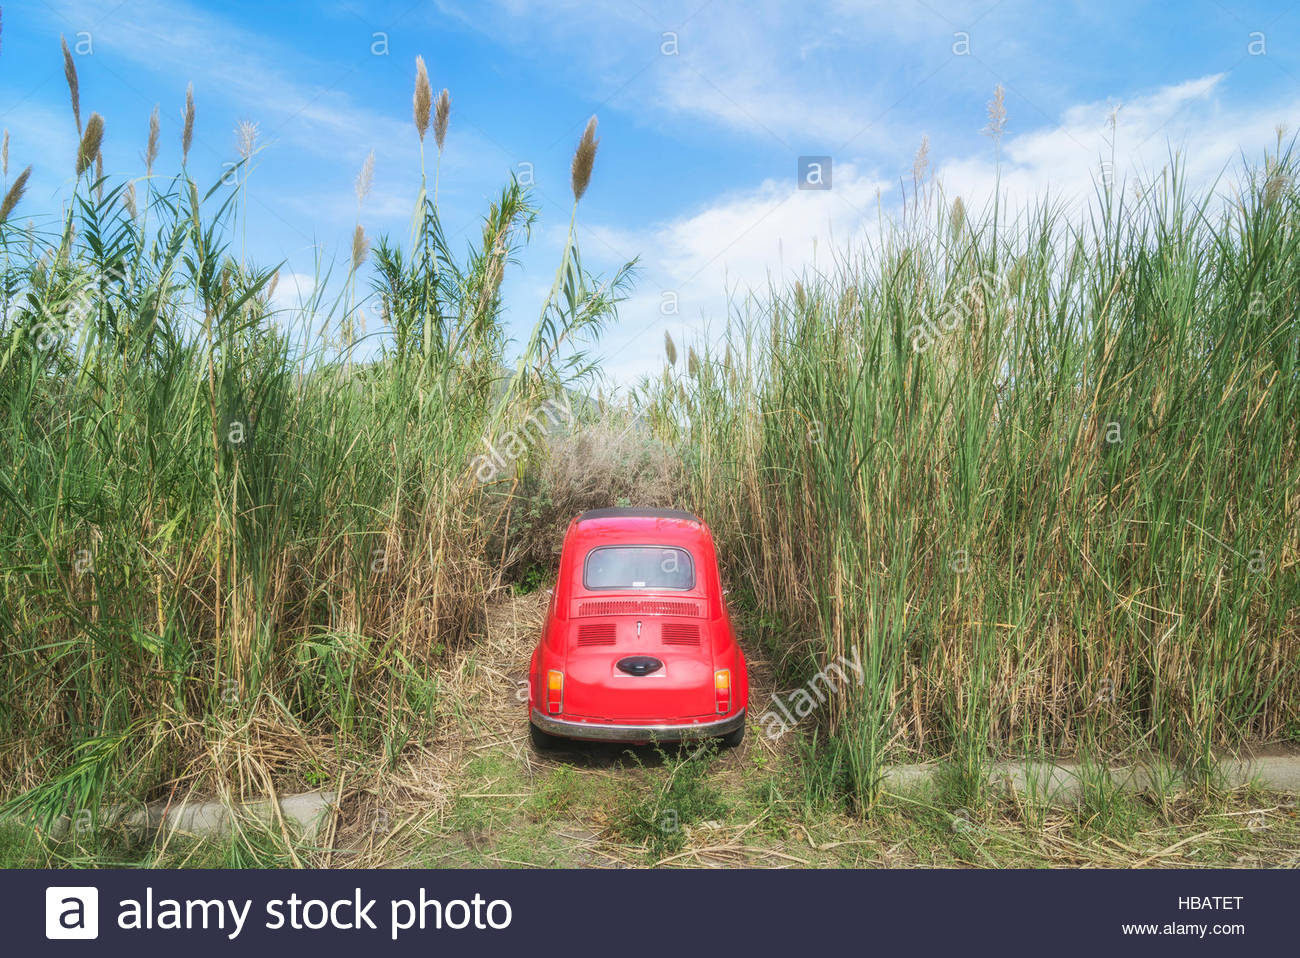 Car parked among long grass, Lipari, Aeolian Islands, Sicily, Italy - Stock Image